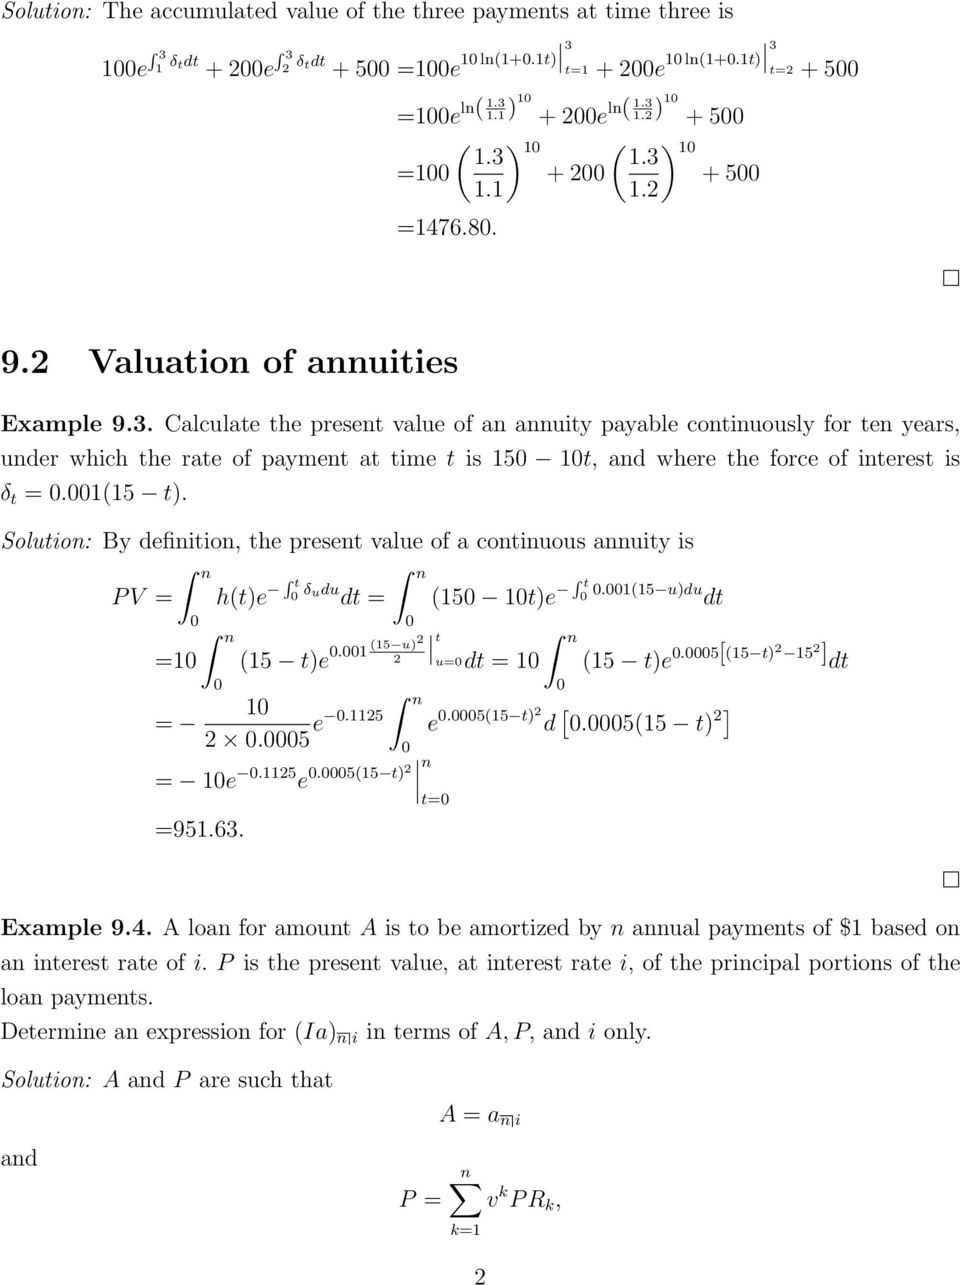 1.2) 10 + 500 ) 10 + 500 ( 1.3 1.2 9.2 Valuaton of annutes Example 9.3. Calculate the present value of an annuty payable contnuously for ten years, under whch the rate of payment at tme t s 150 10t, and where the force of nterest s δ t = 0.